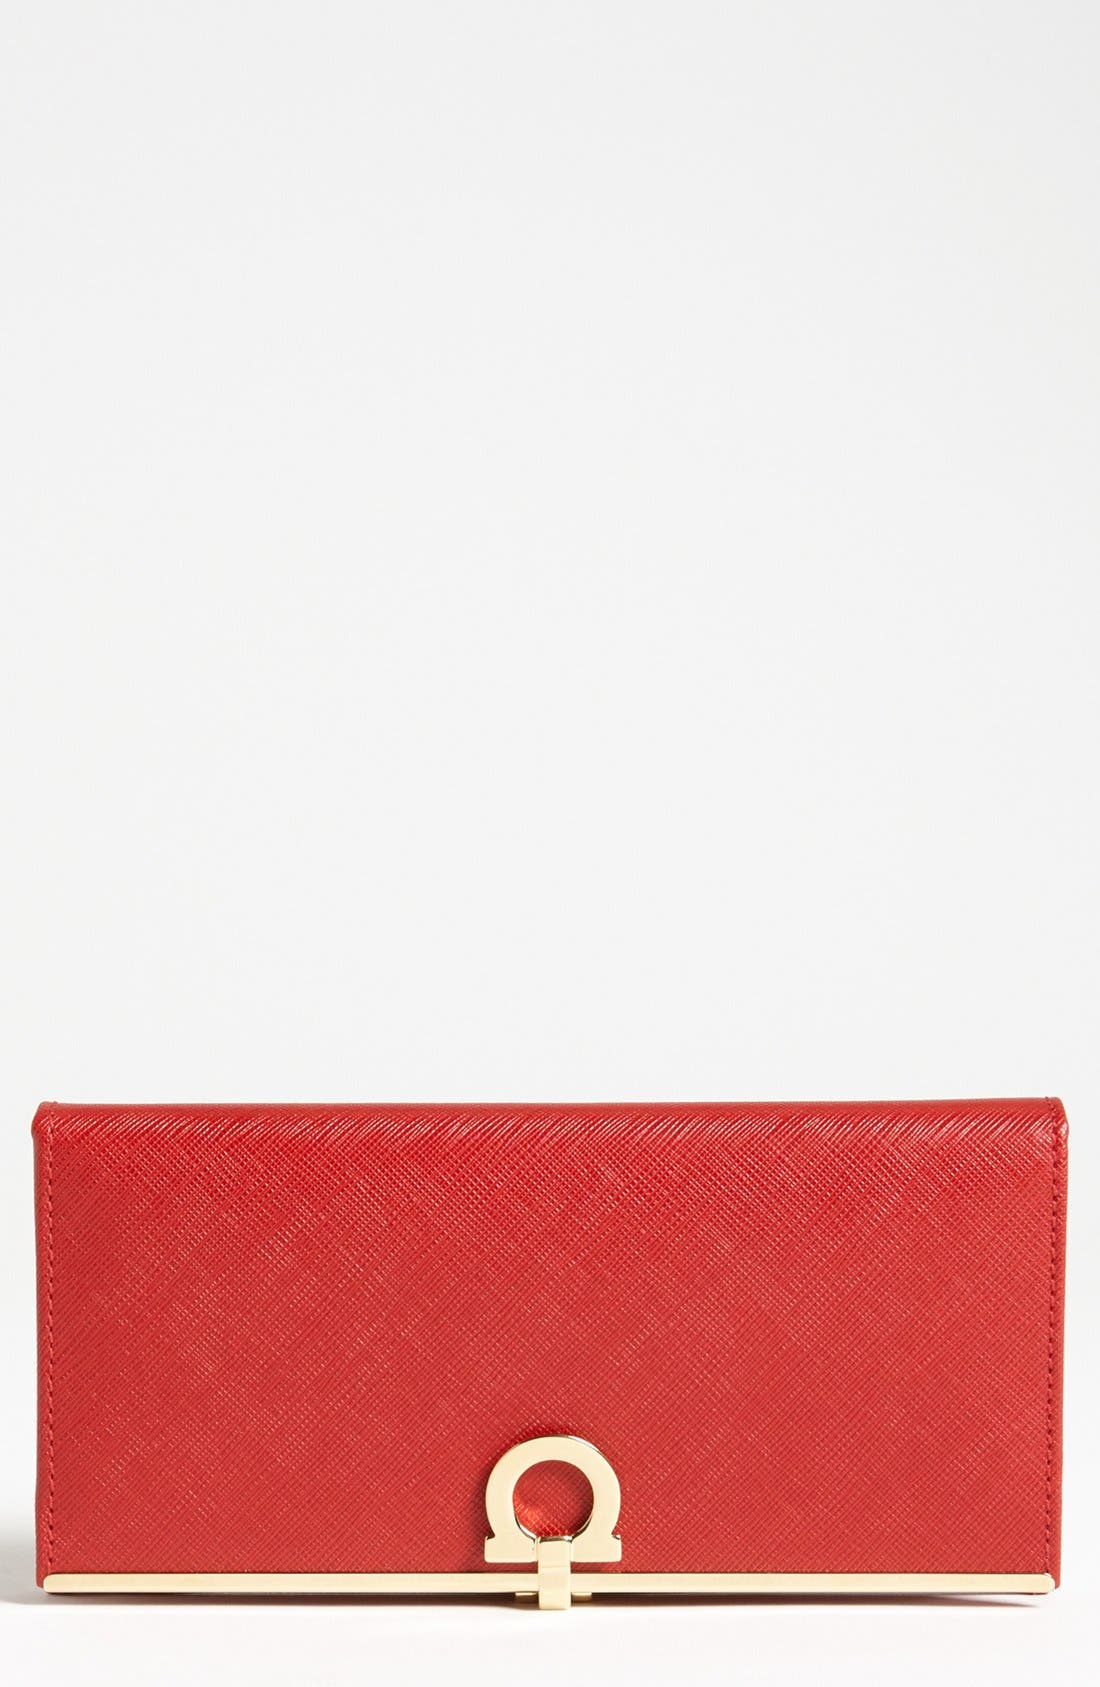 Saffiano Leather Wallet,                         Main,                         color, 600